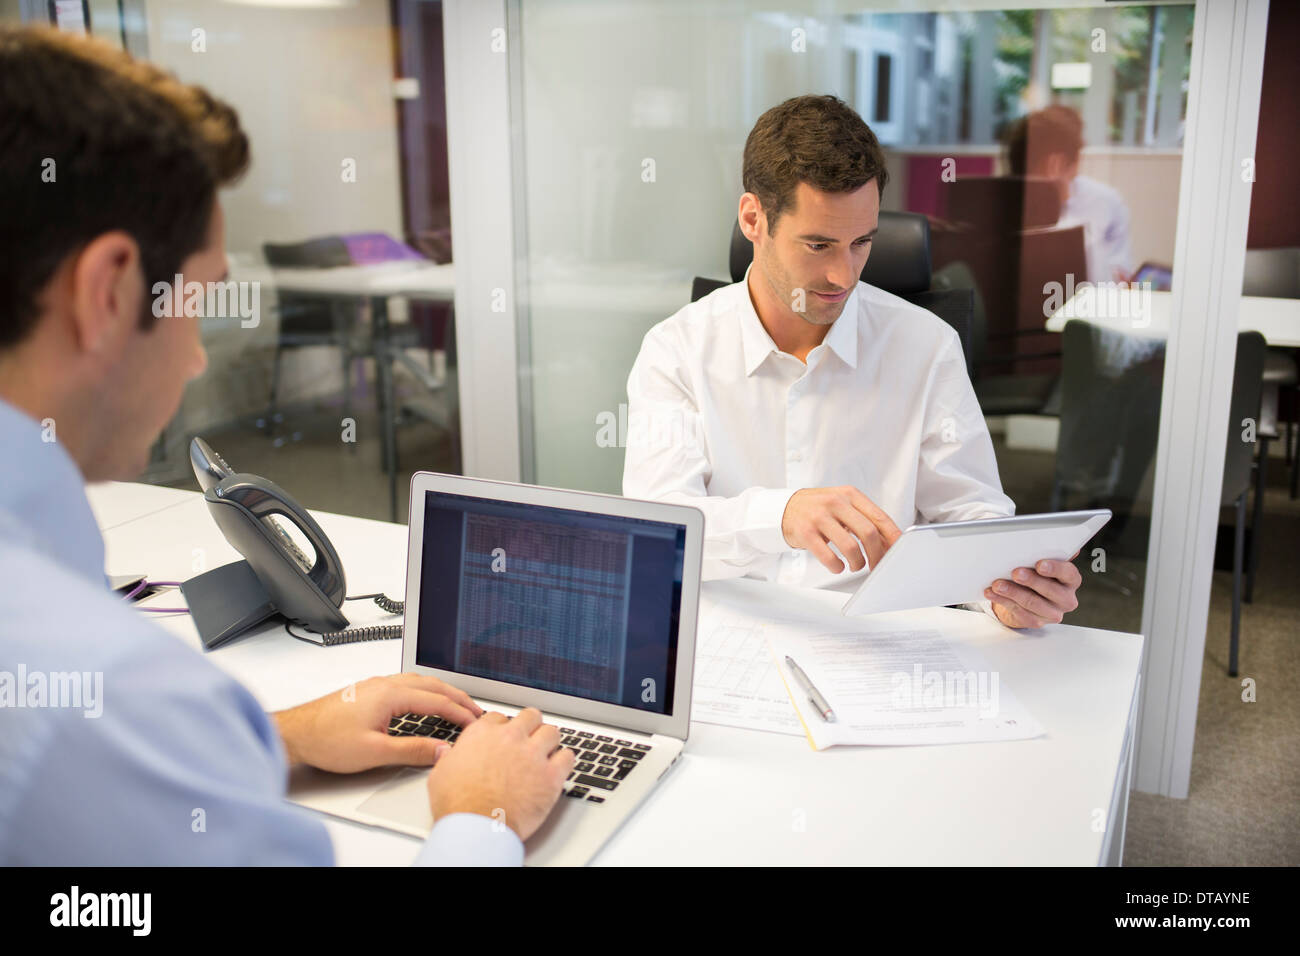 Two businessman working on computer in office, coworkers - Stock Image